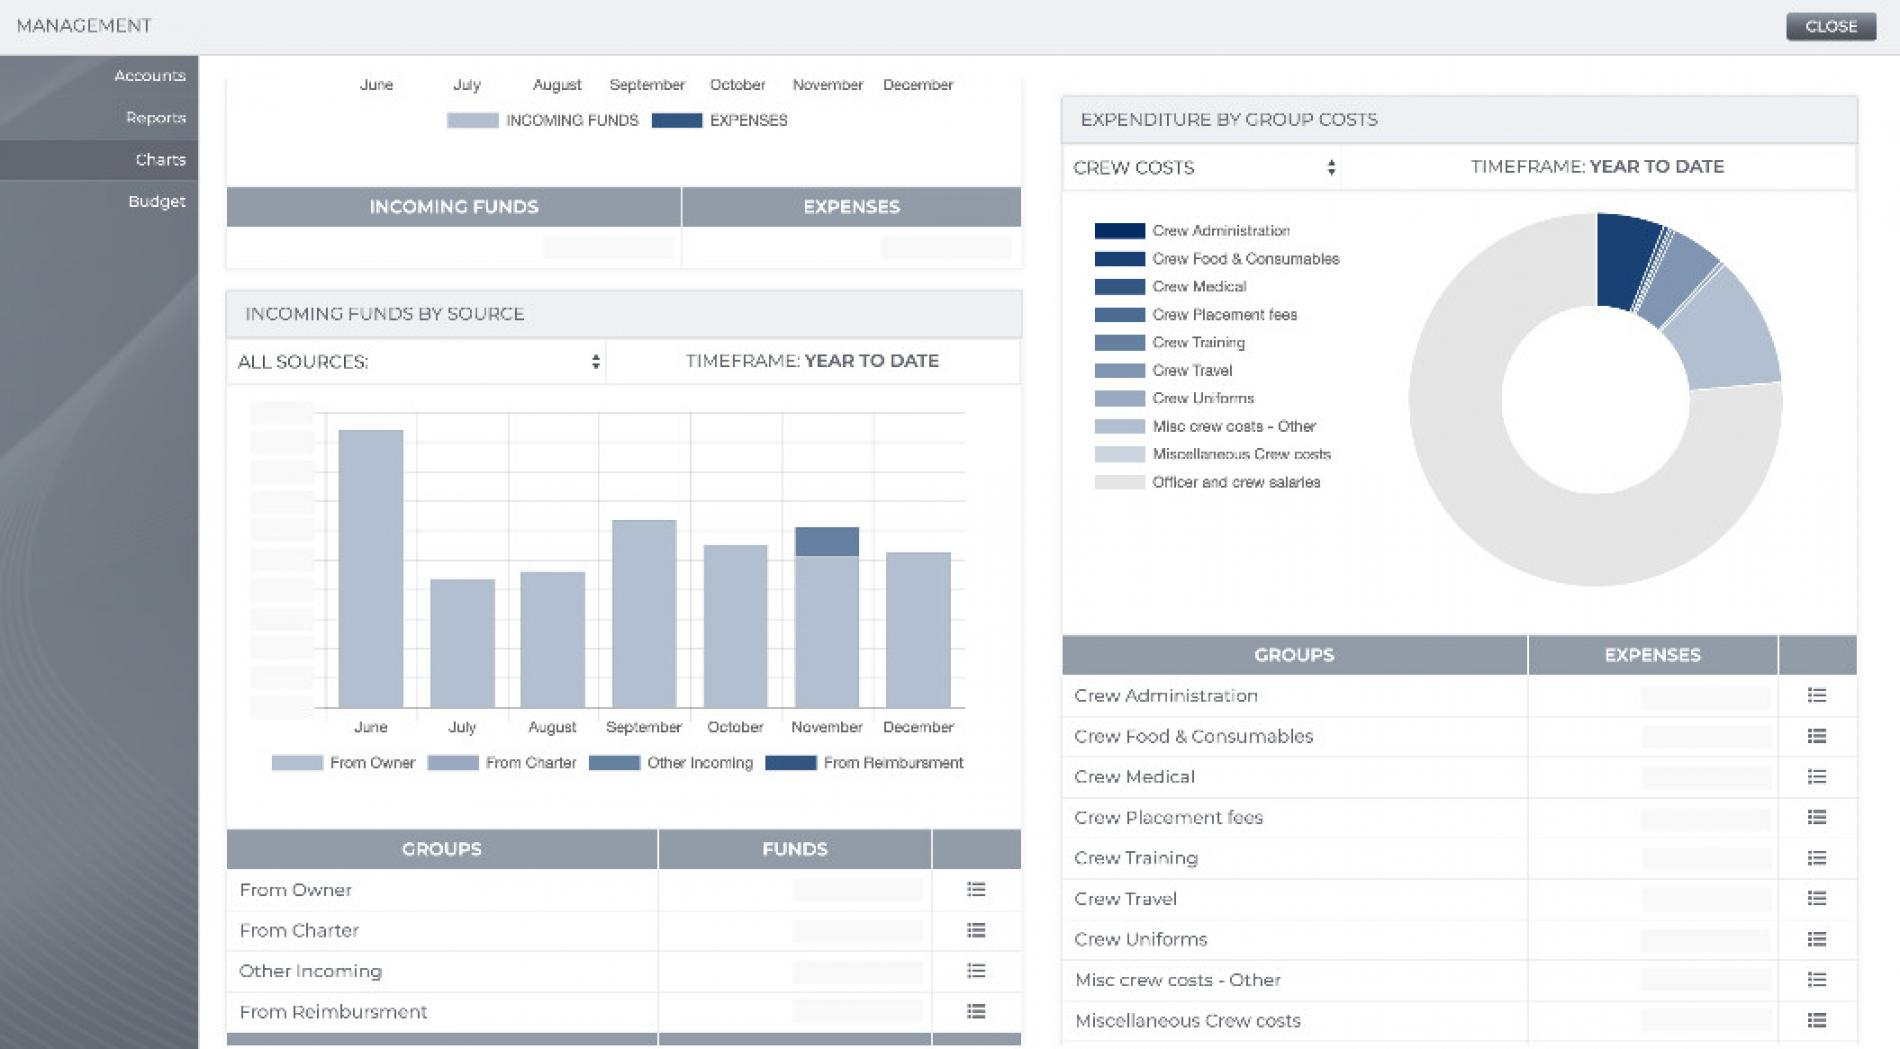 Intelligence & Charts - Charter Marketing Services | C&N